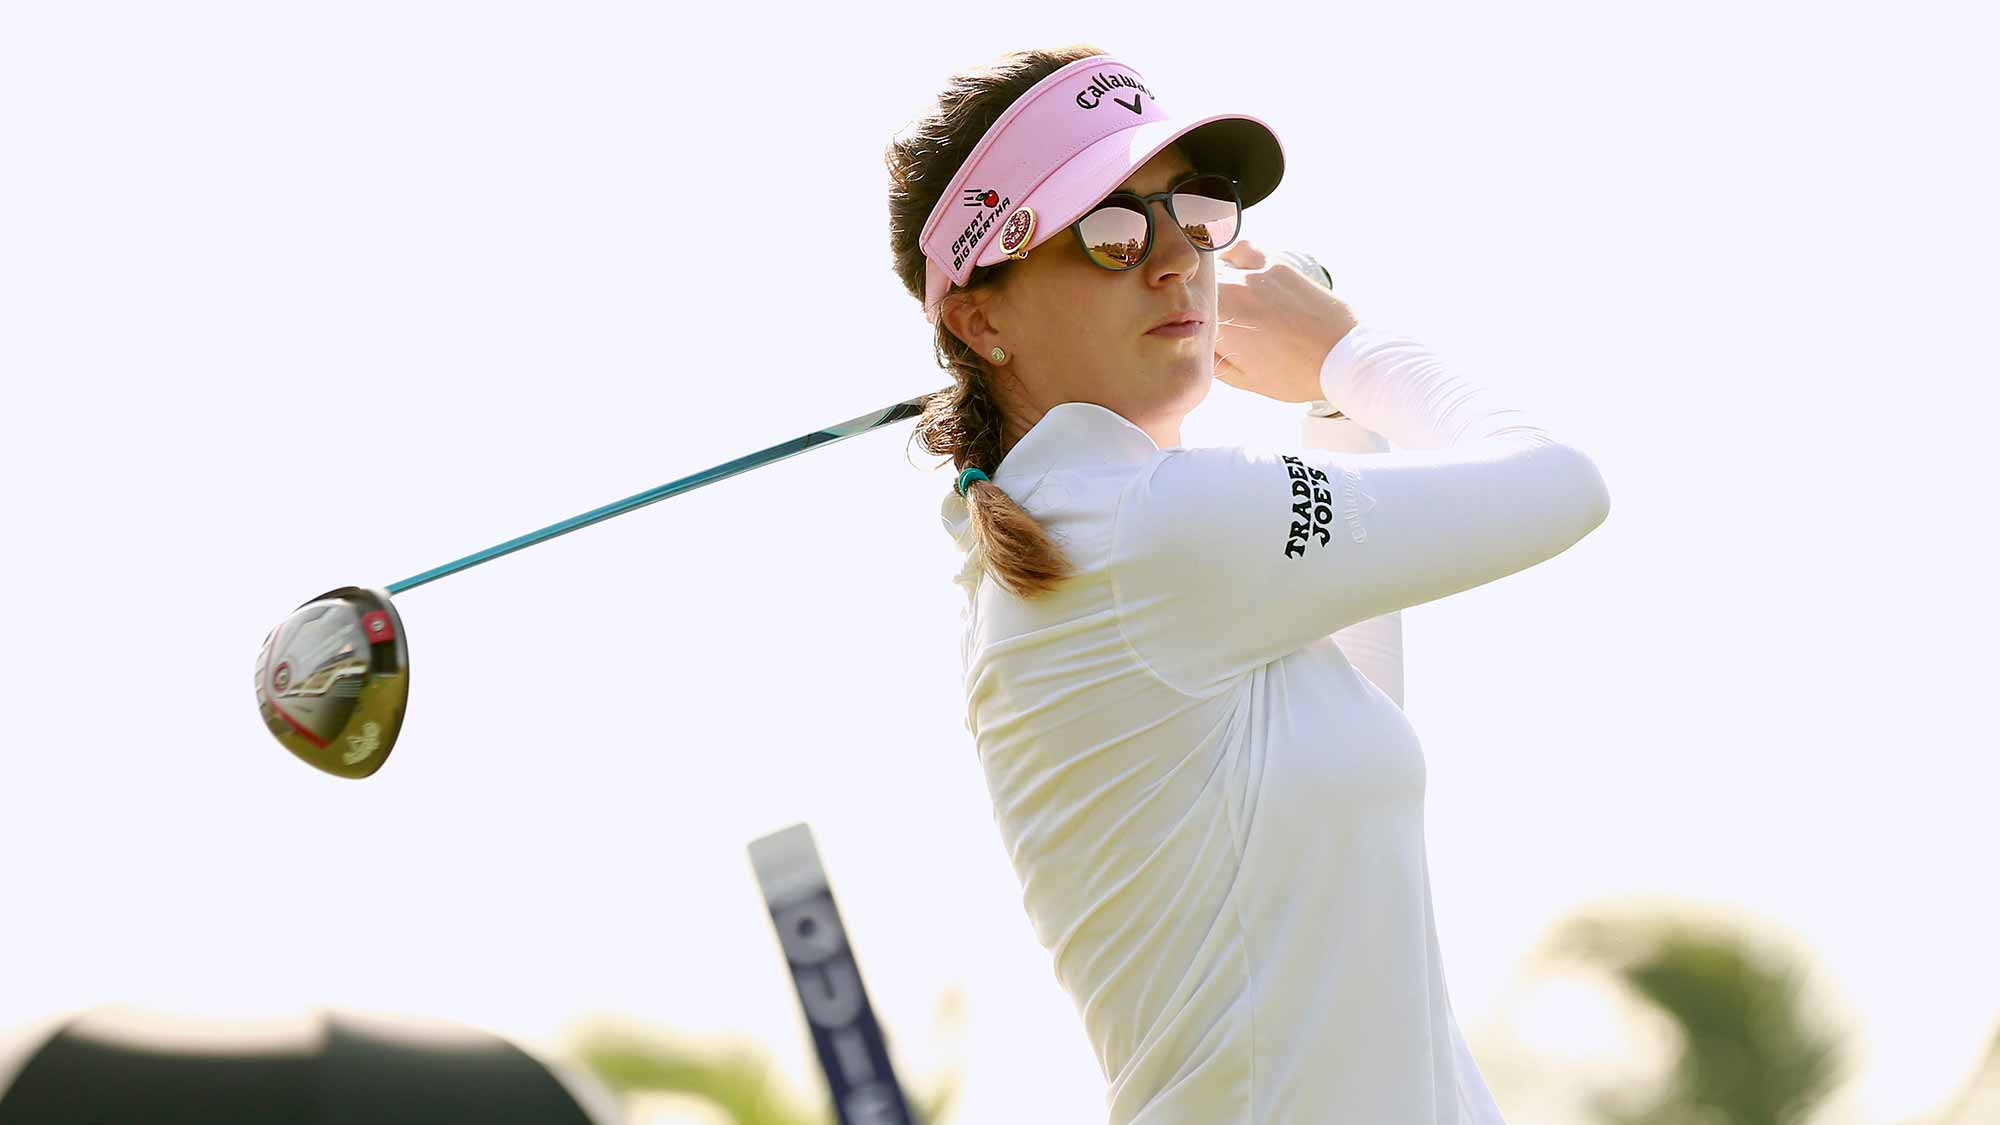 Sandra Gal of Germany tees off at Blue Bay LPGA during Round 1